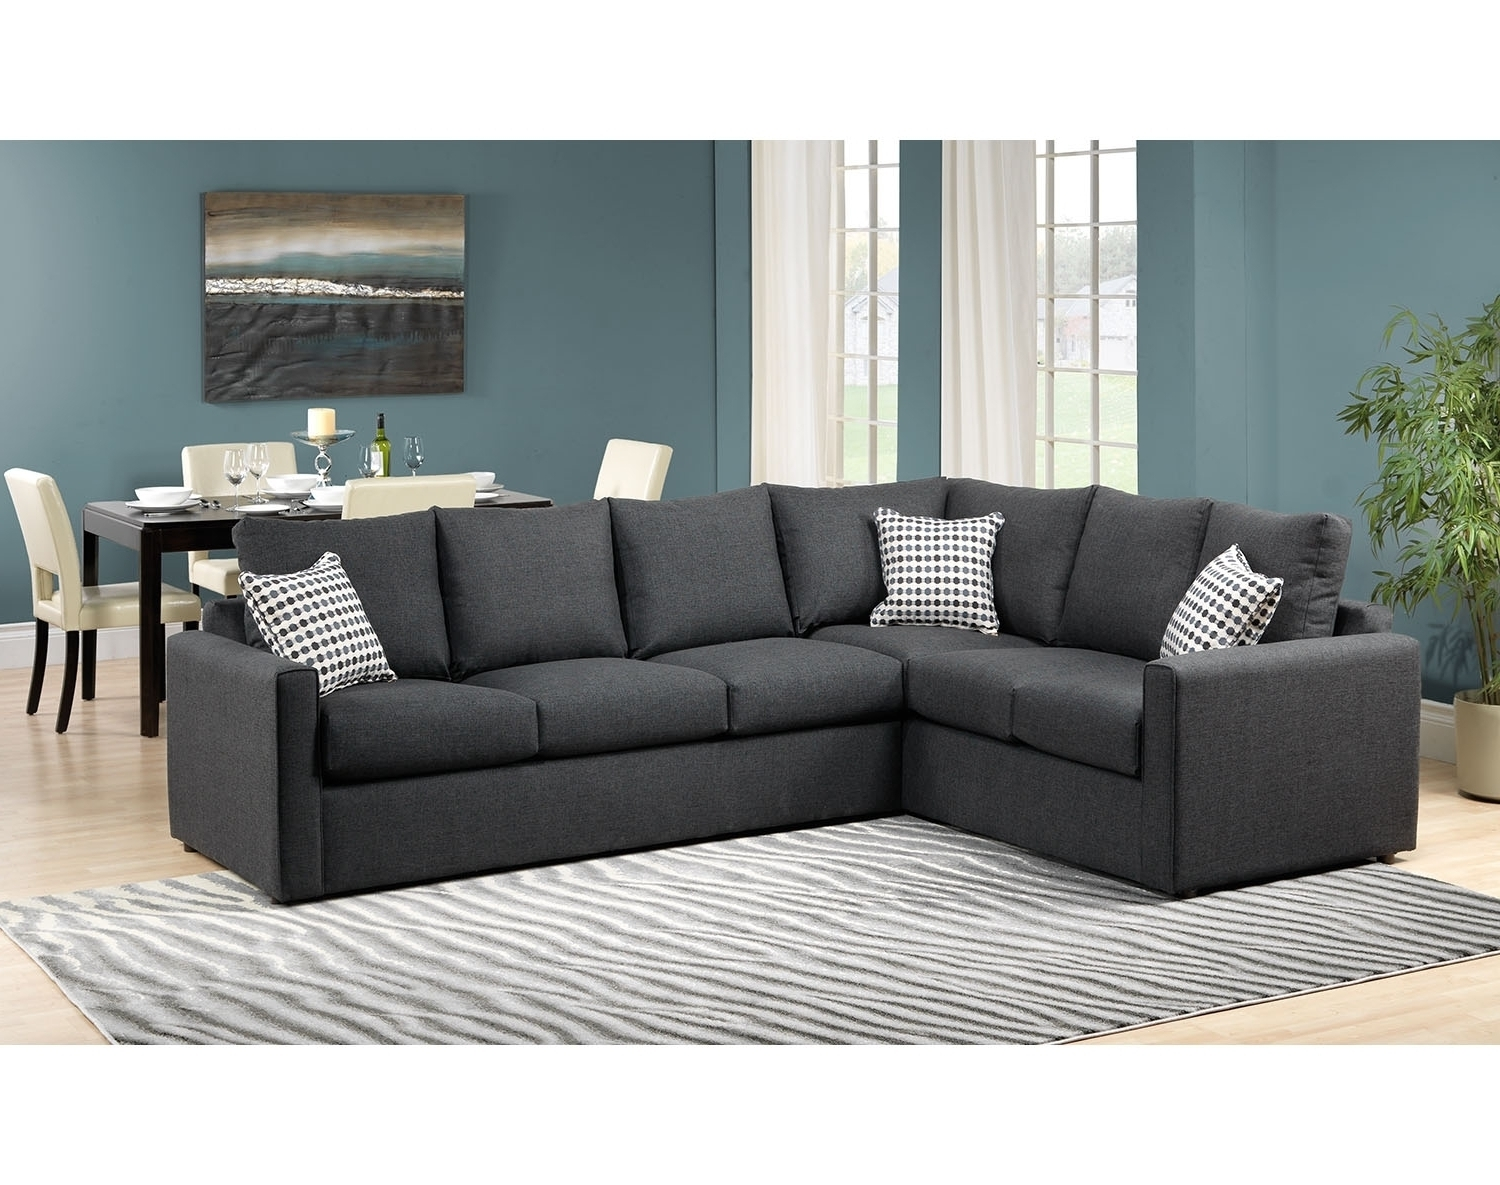 2019 Leons Sectional Sofas In Sectional Sofa Bed Leons • Sofa Bed (View 14 of 20)